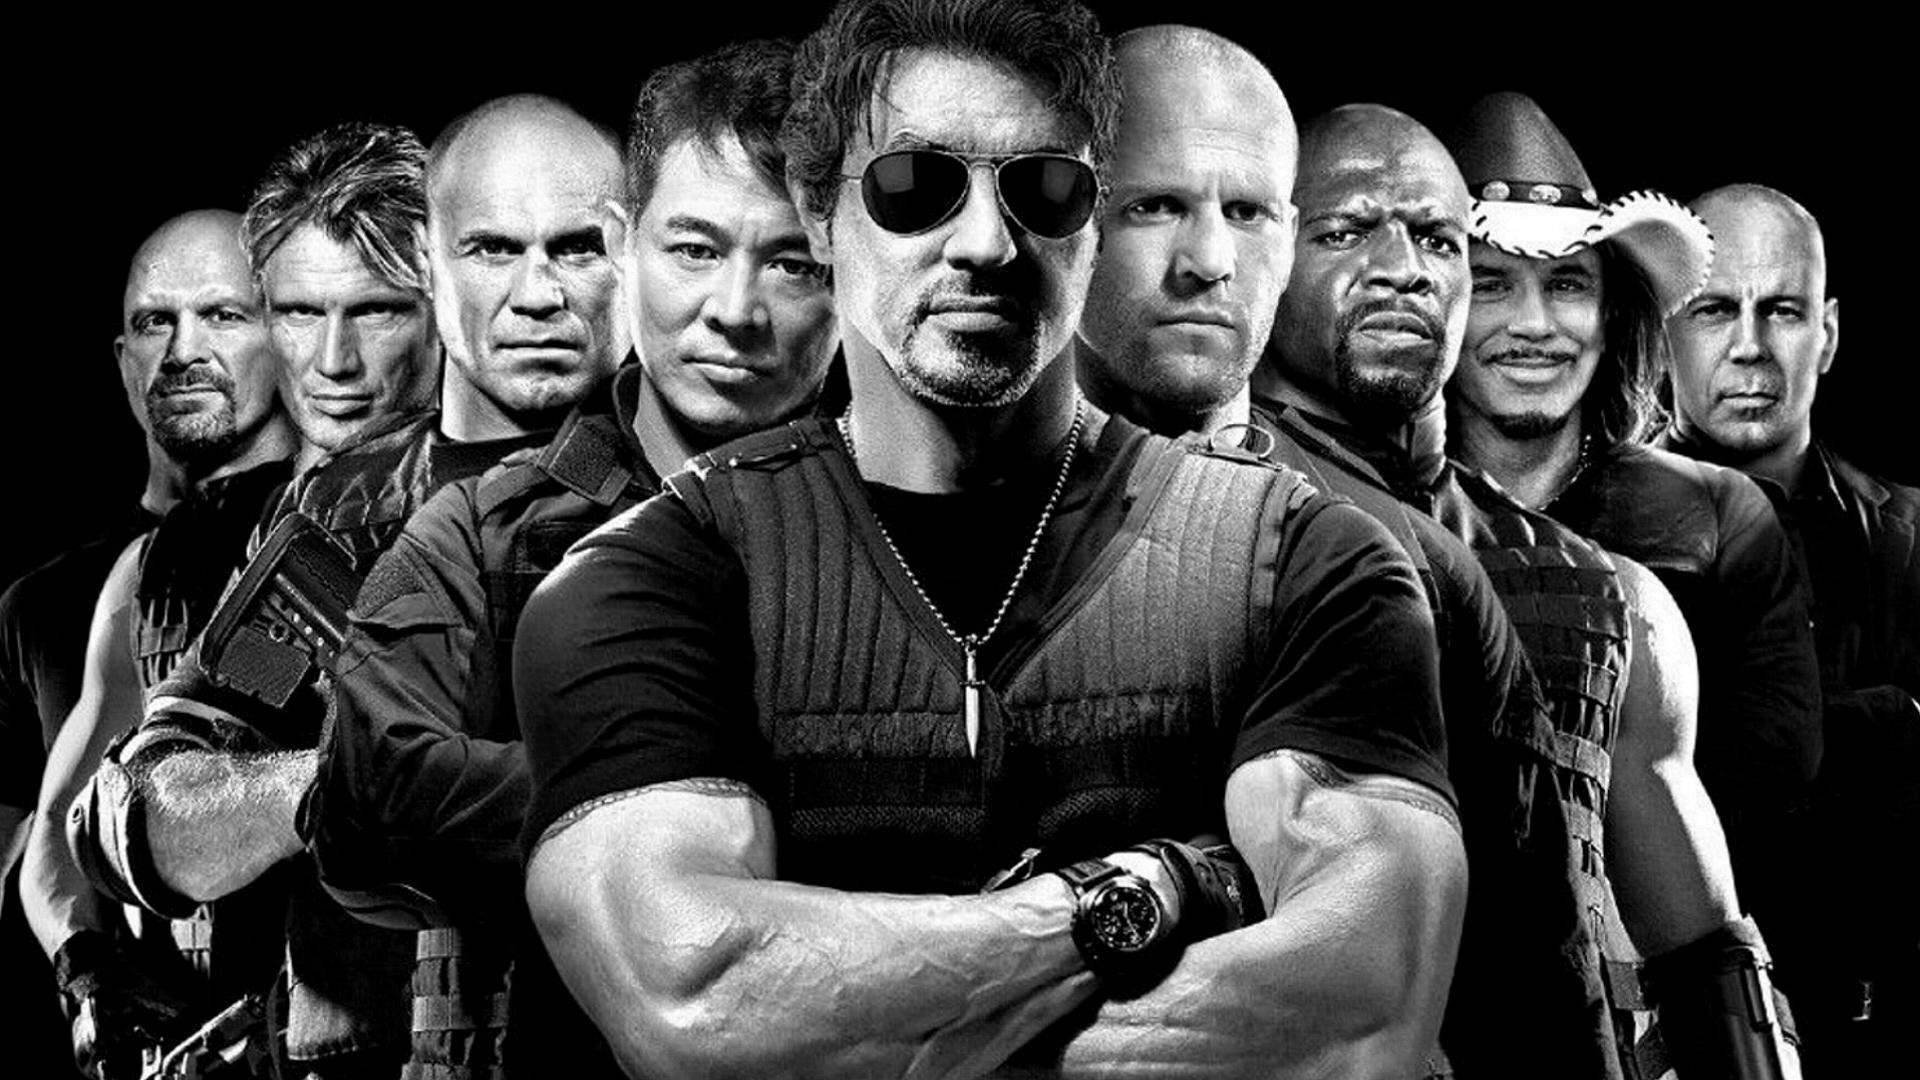 The Expendables - The Expendables Wallpaper (17953942 ...